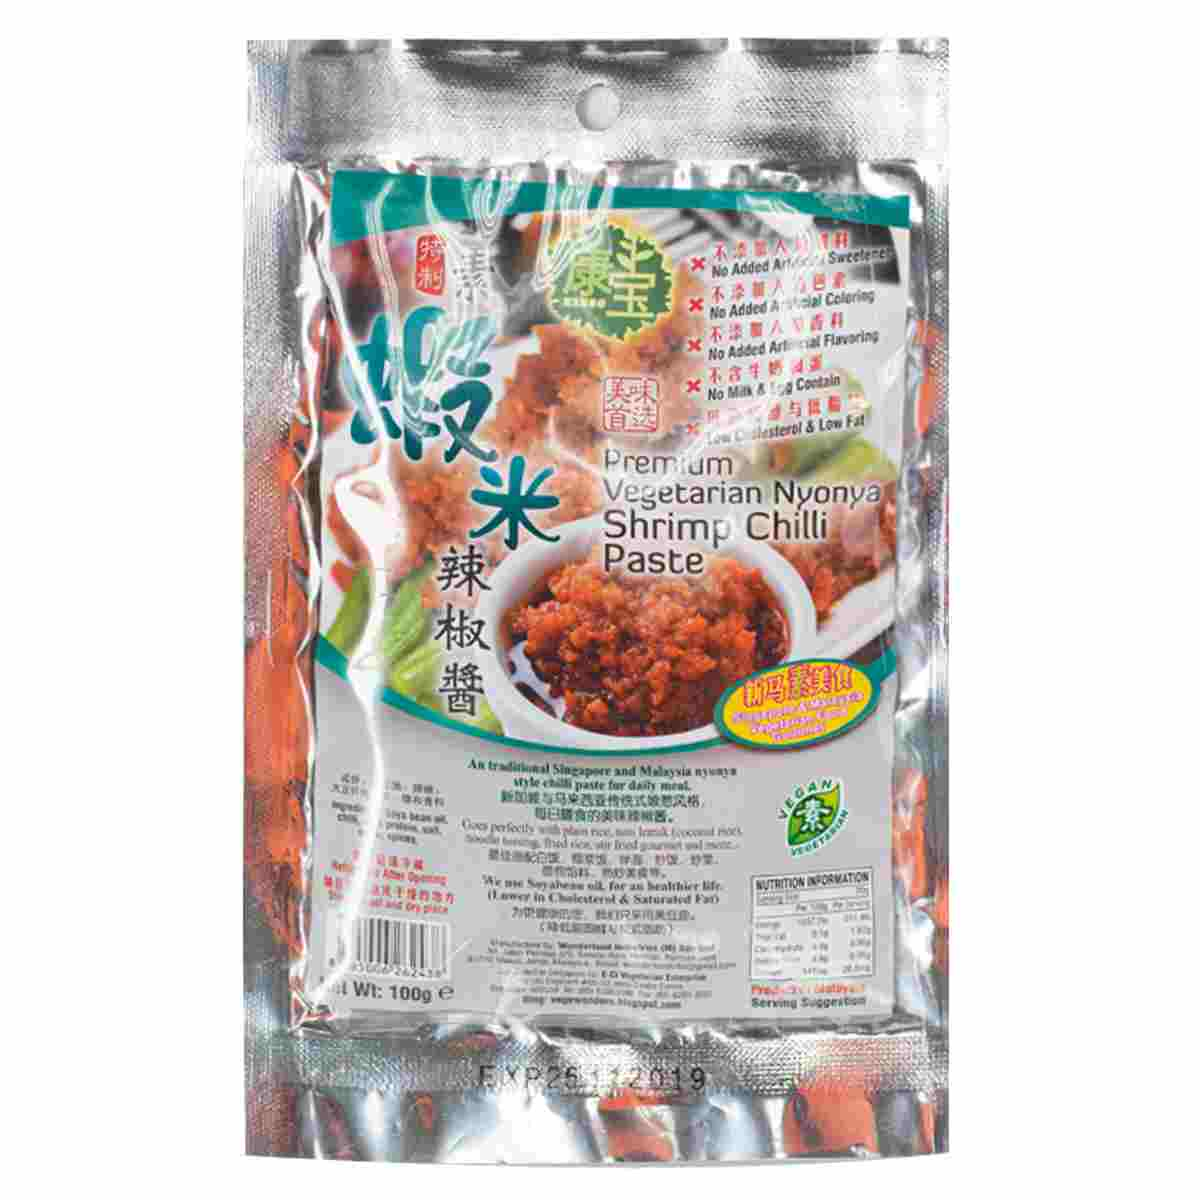 Image Shrimp Chili Paste 康宝 - 素虾米辣椒酱 100grams